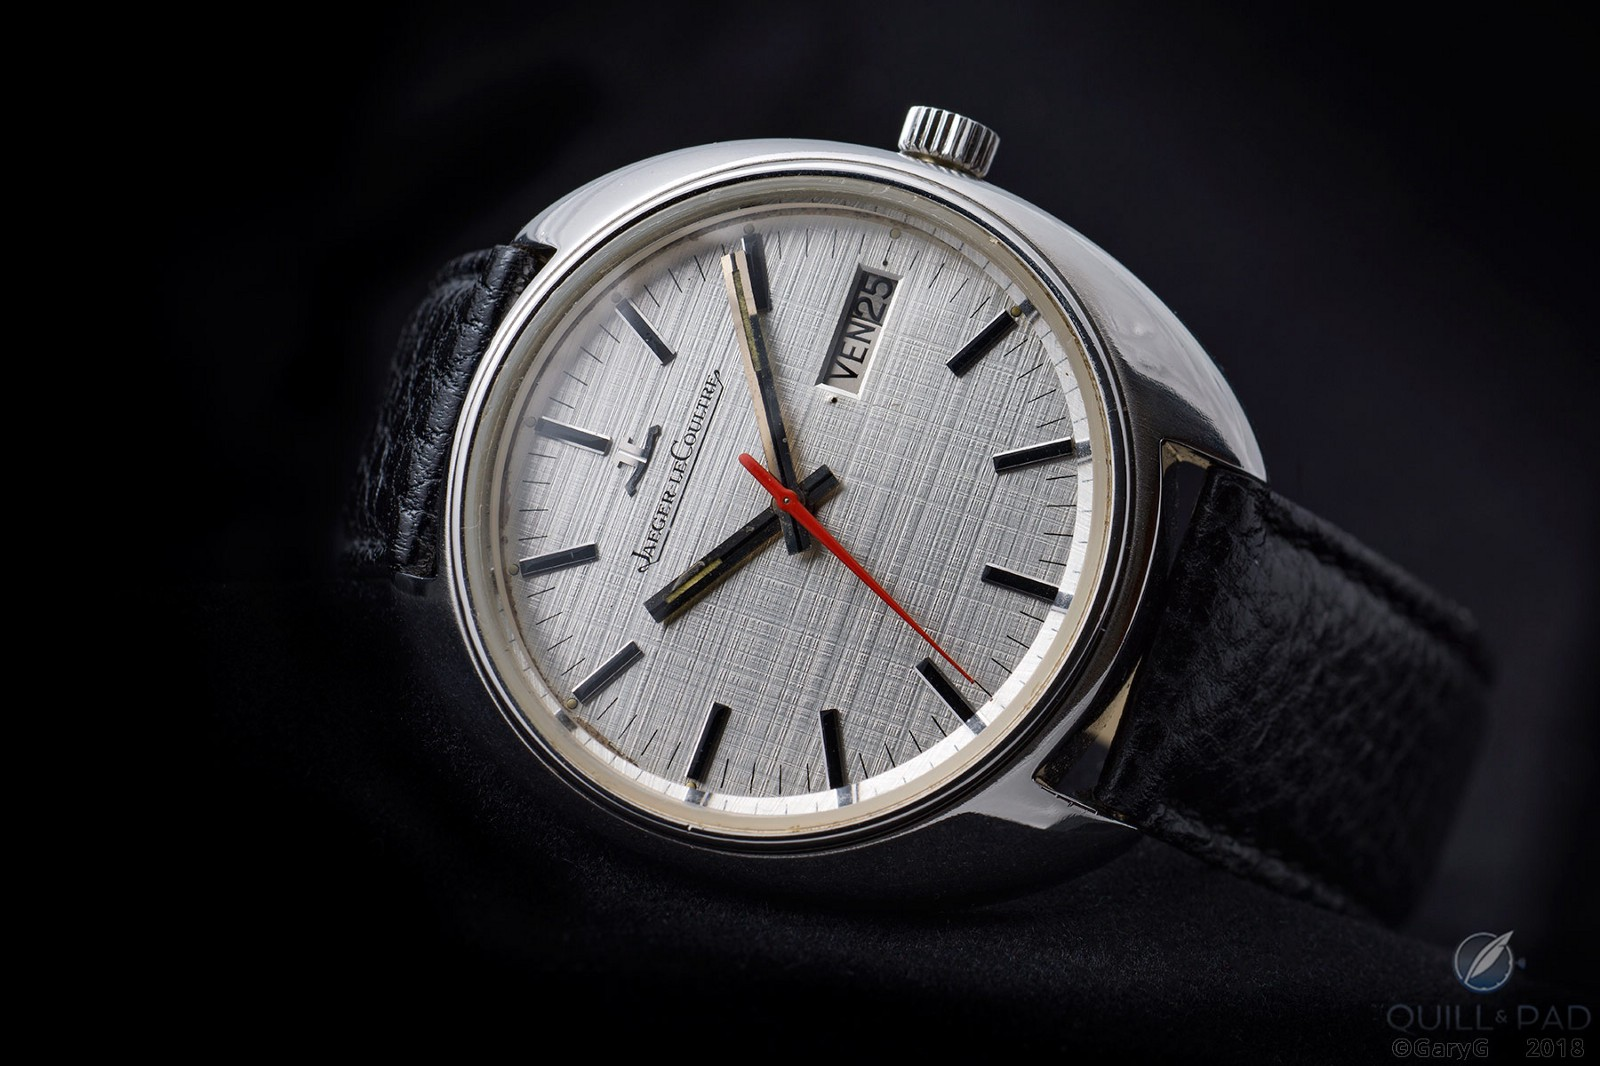 Jaeger-LeCoultre prototype watch with silver linen-patterned dial